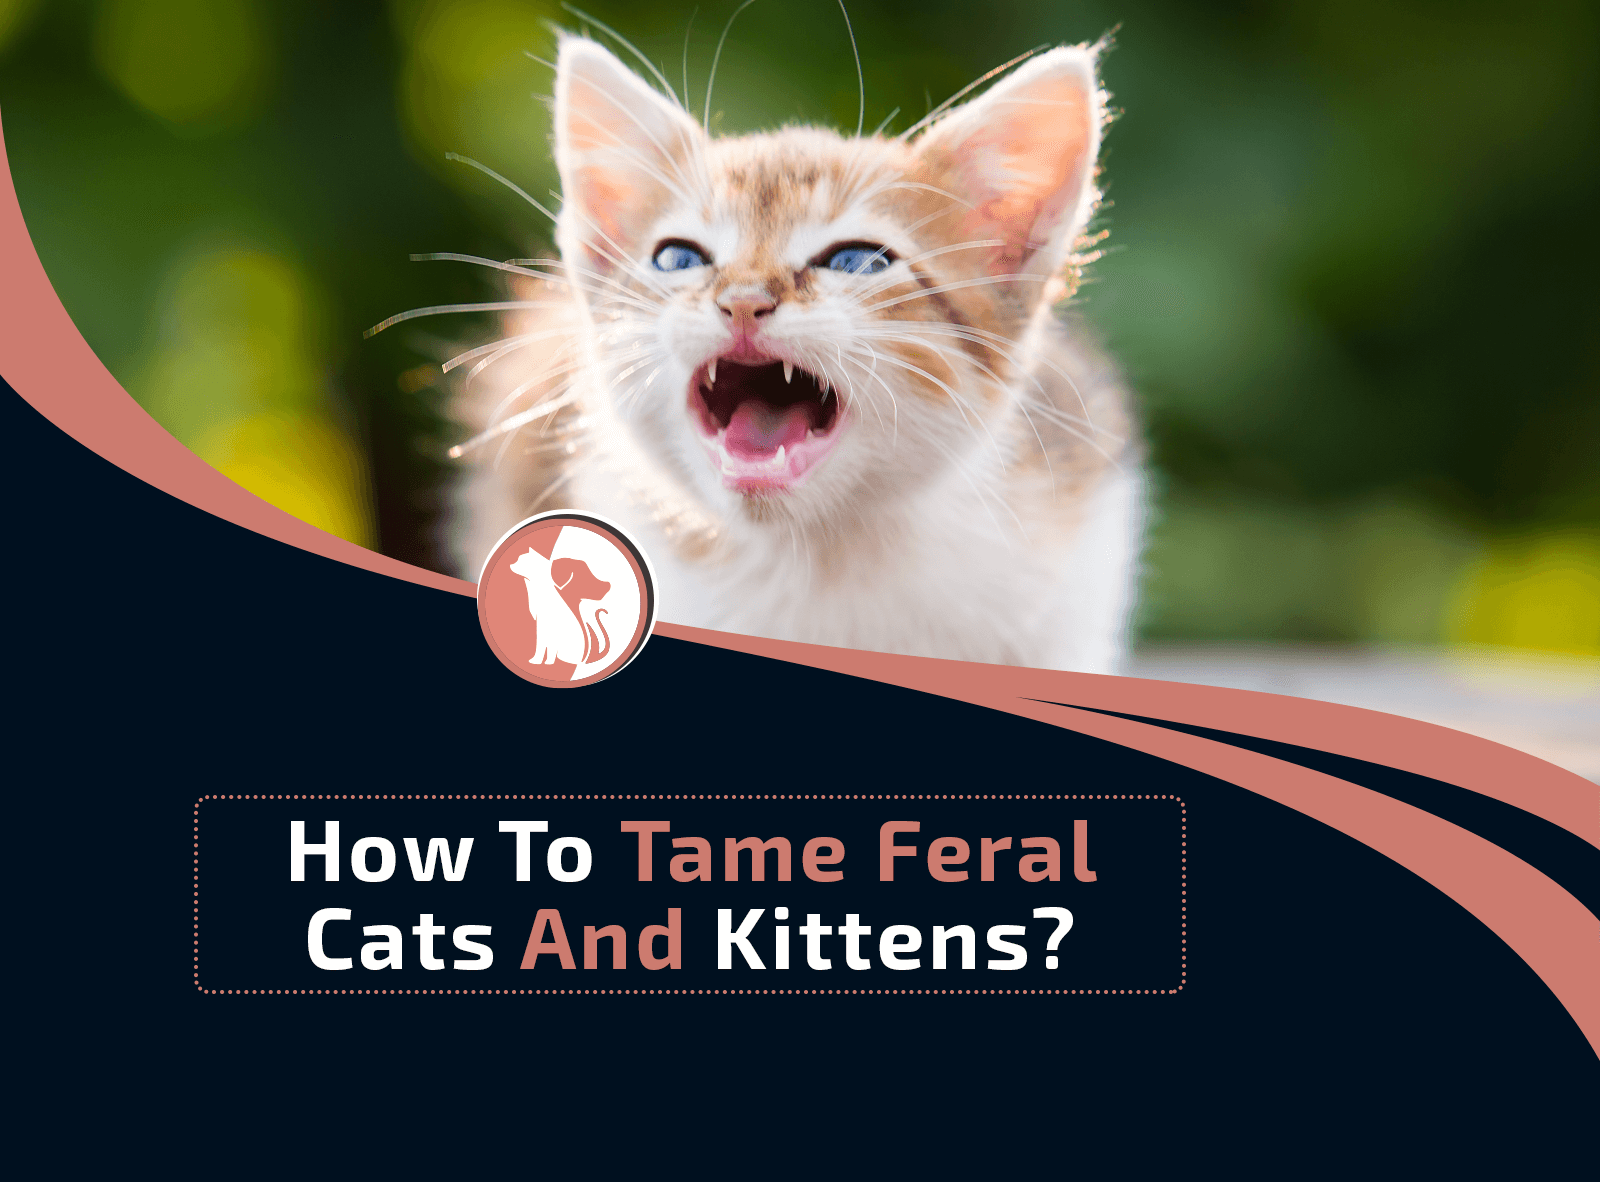 How To Tame Feral Cats And Kittens?